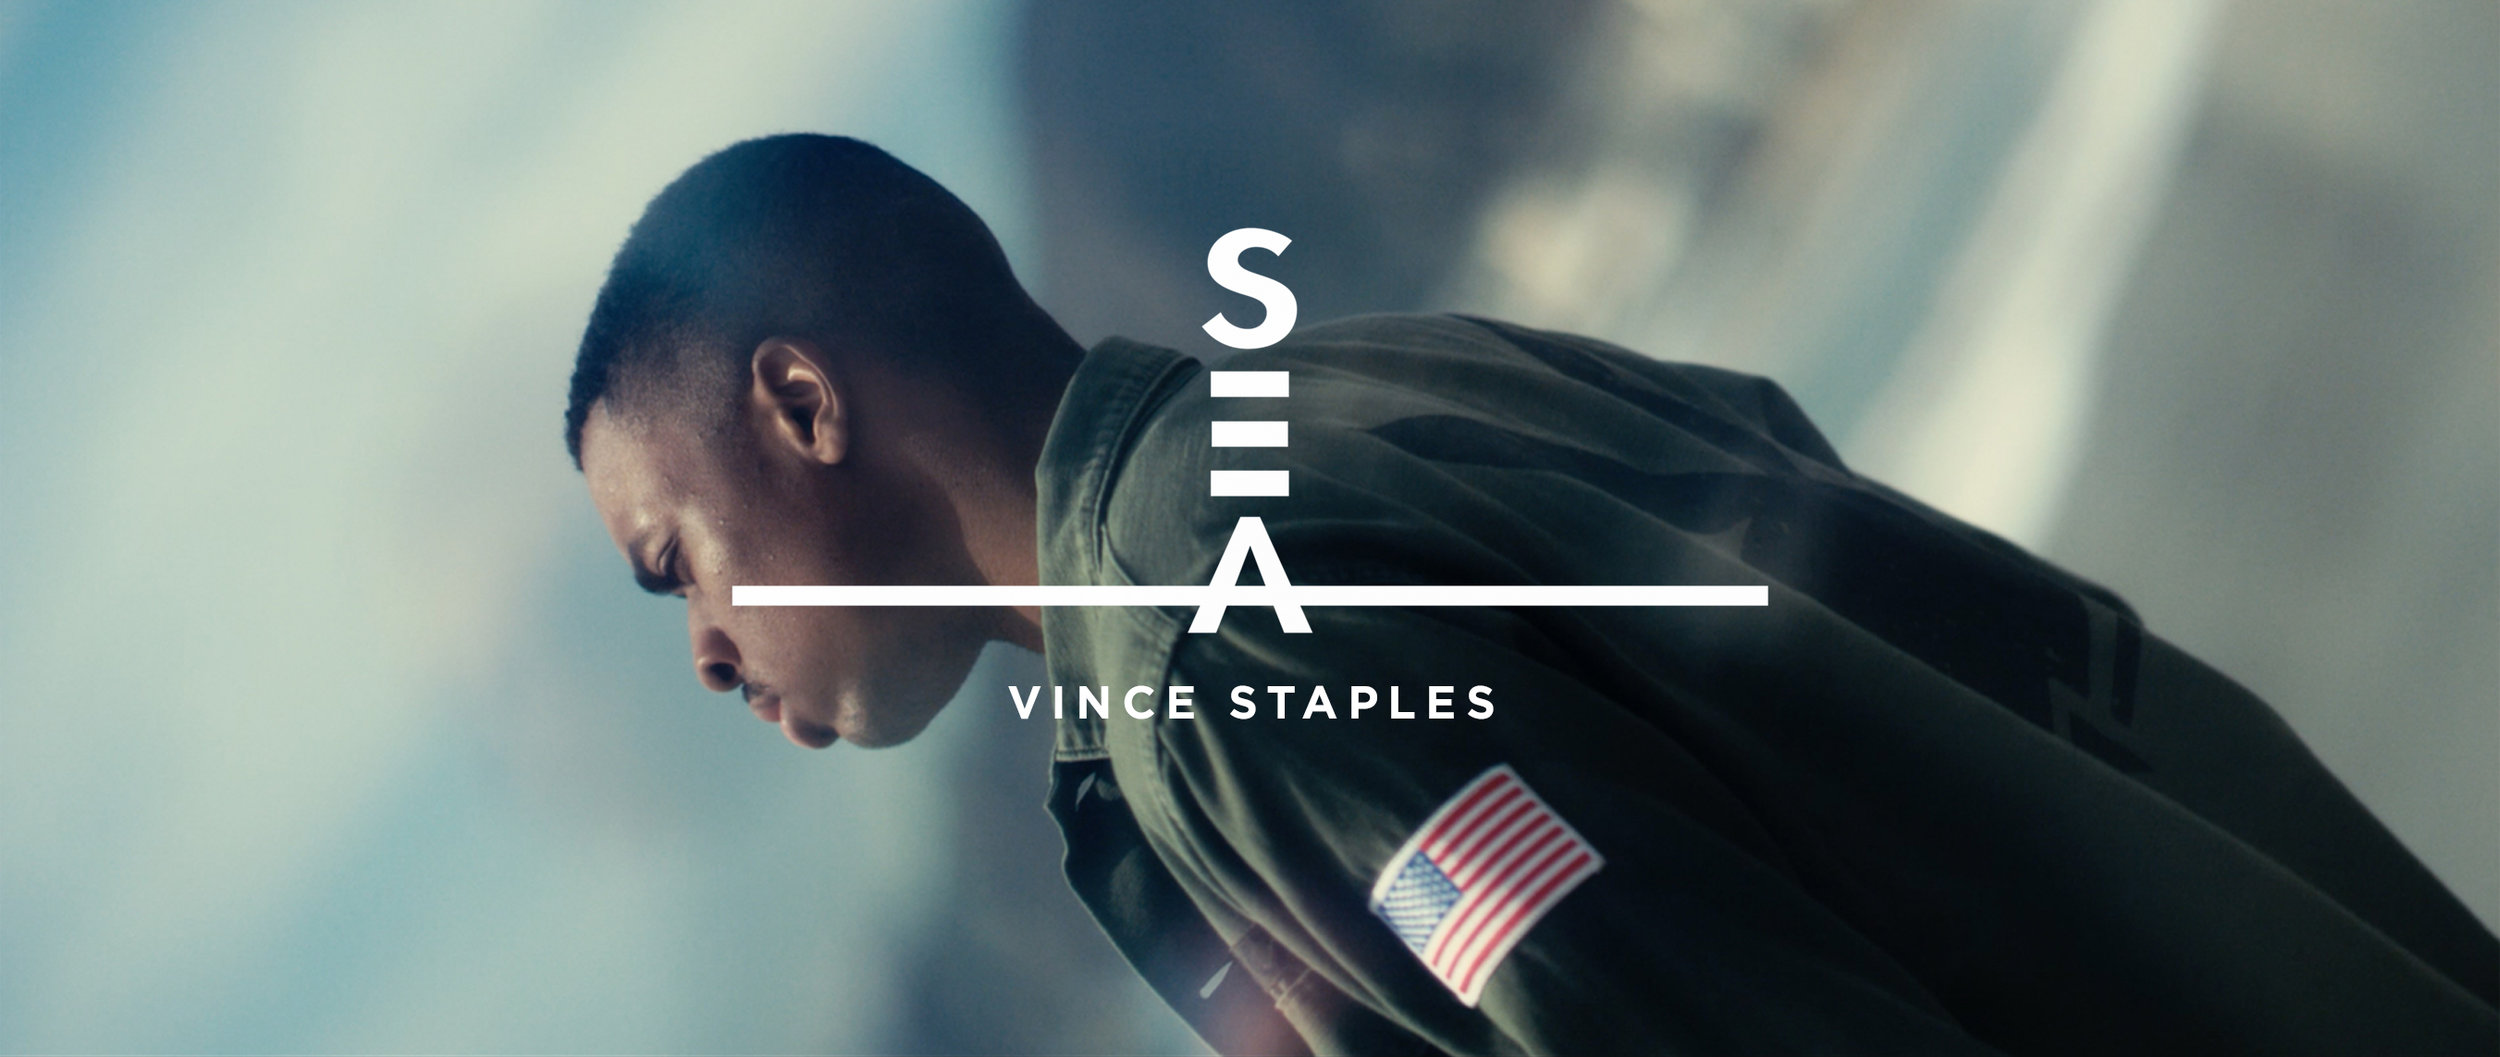 VINCE STAPLES JACOB ARDEN MCCLURE.jpg